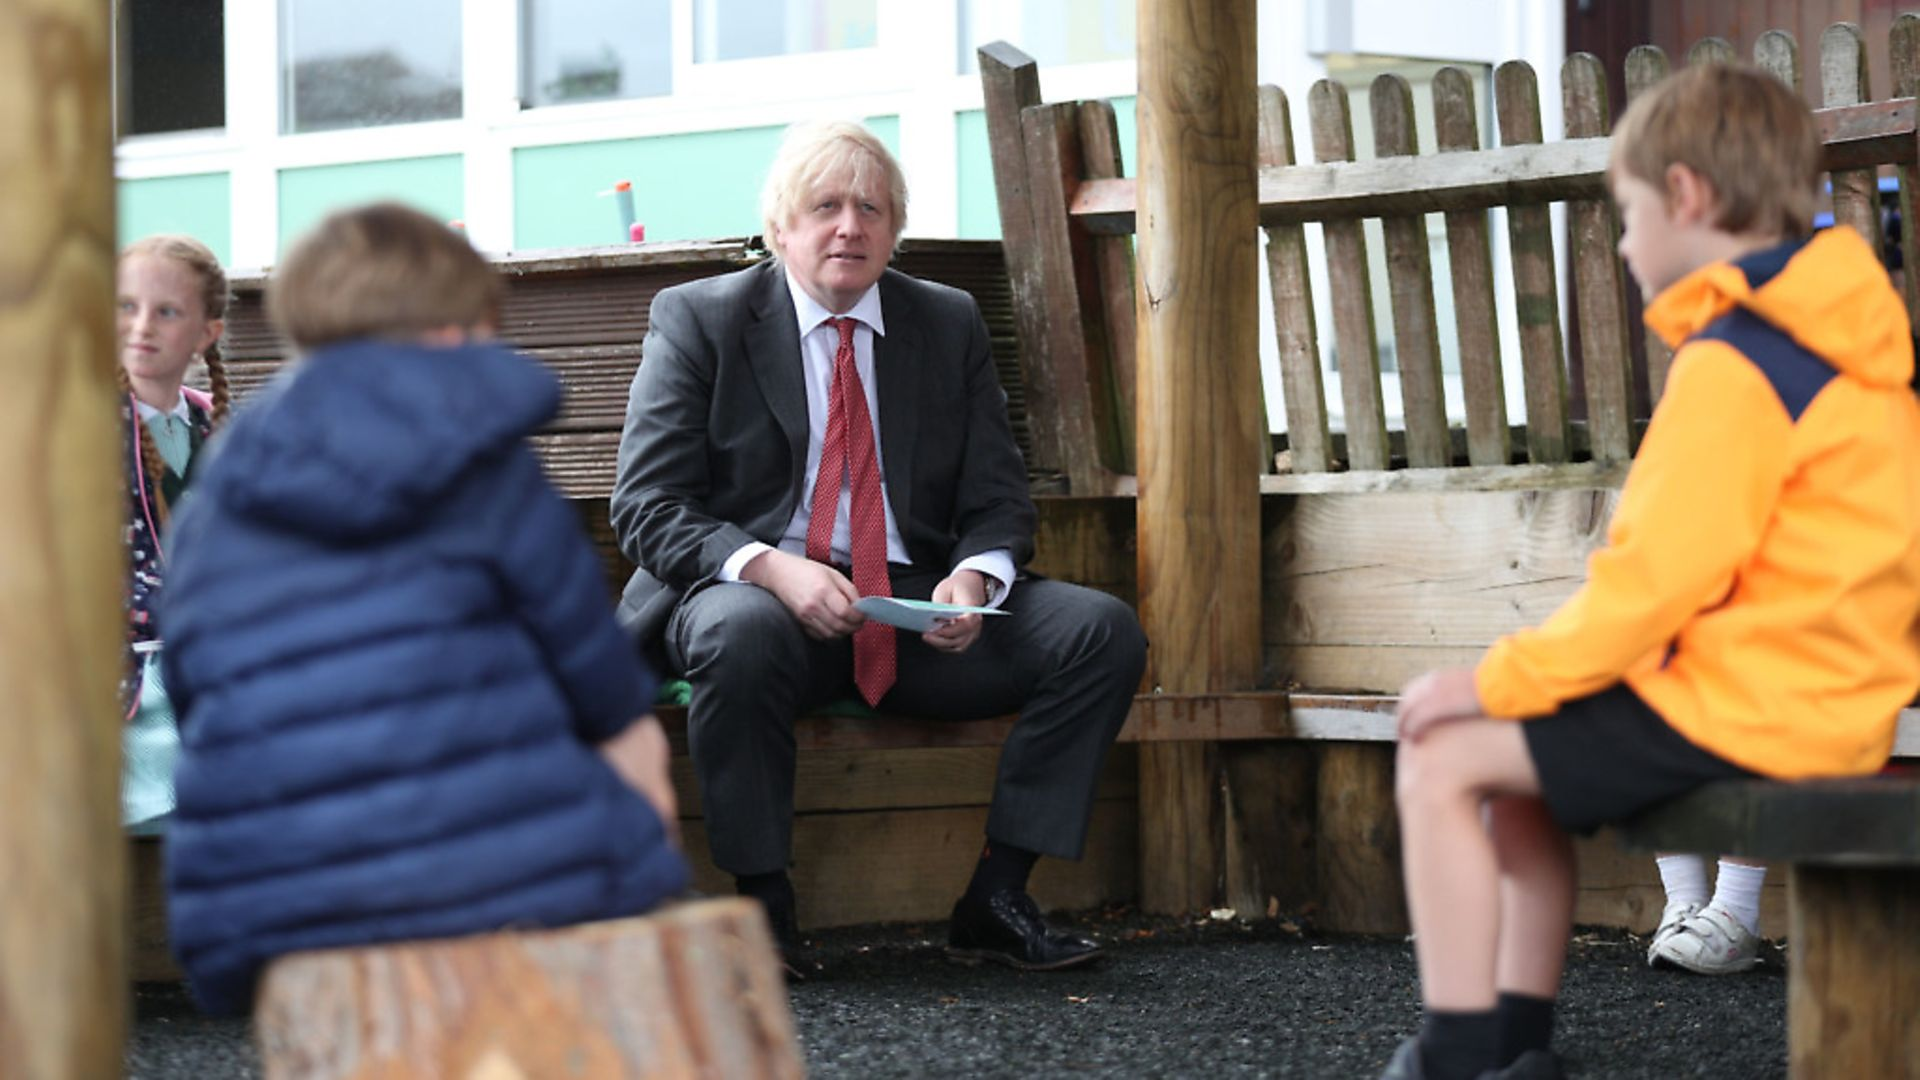 Prime Minister Boris Johnson joins a socially distanced lesson during a visit to Bovingdon Primary School. Photograph: Steve Parsons/PA Wire. - Credit: PA